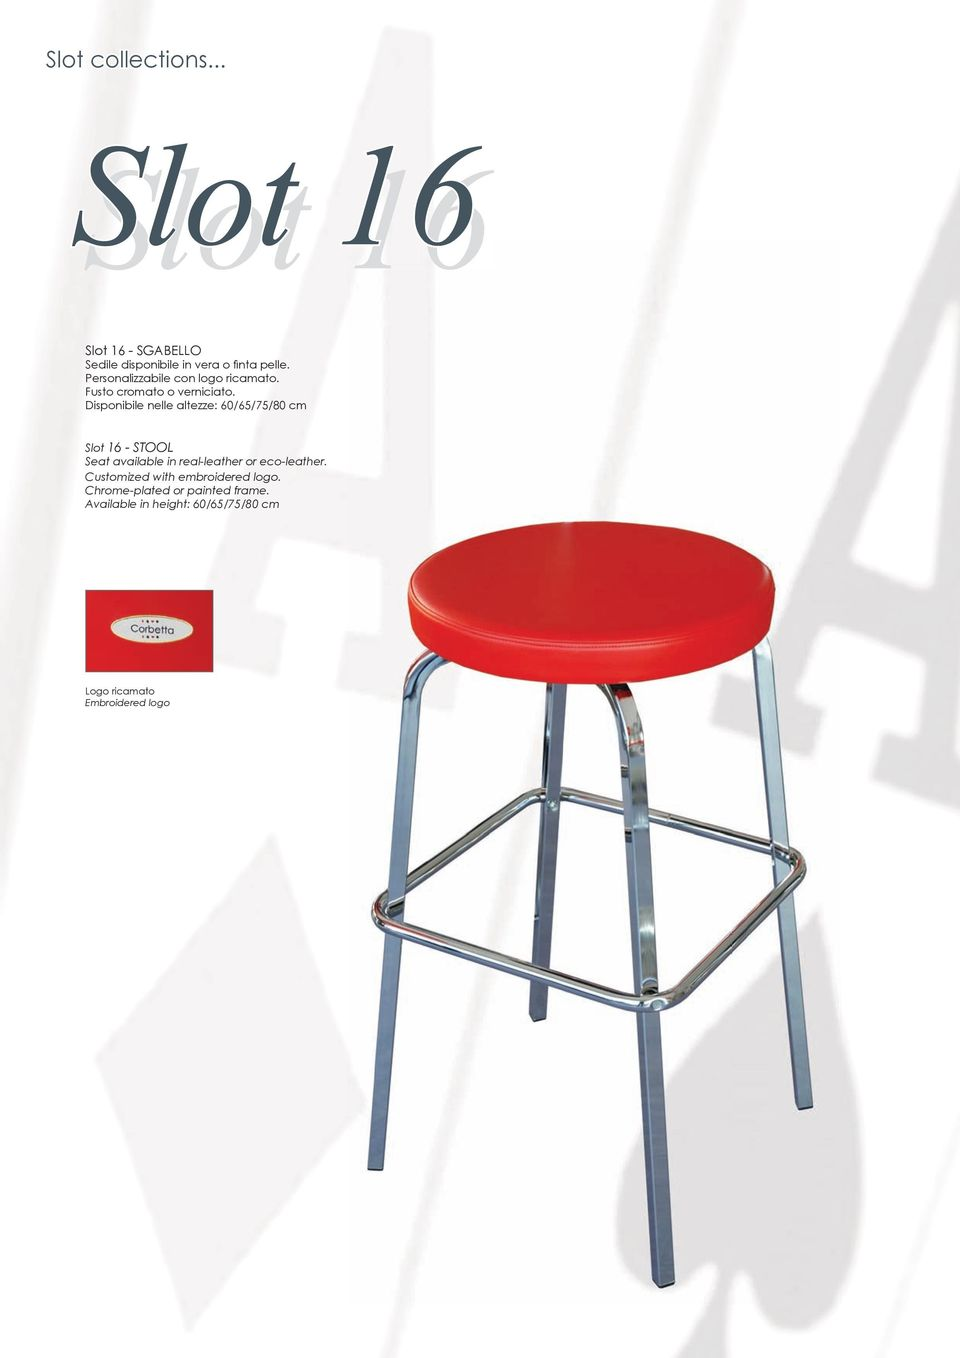 Disponibile nelle altezze: 60/65/75/80 cm Slot 16 - STOOL Seat available in real-leather or